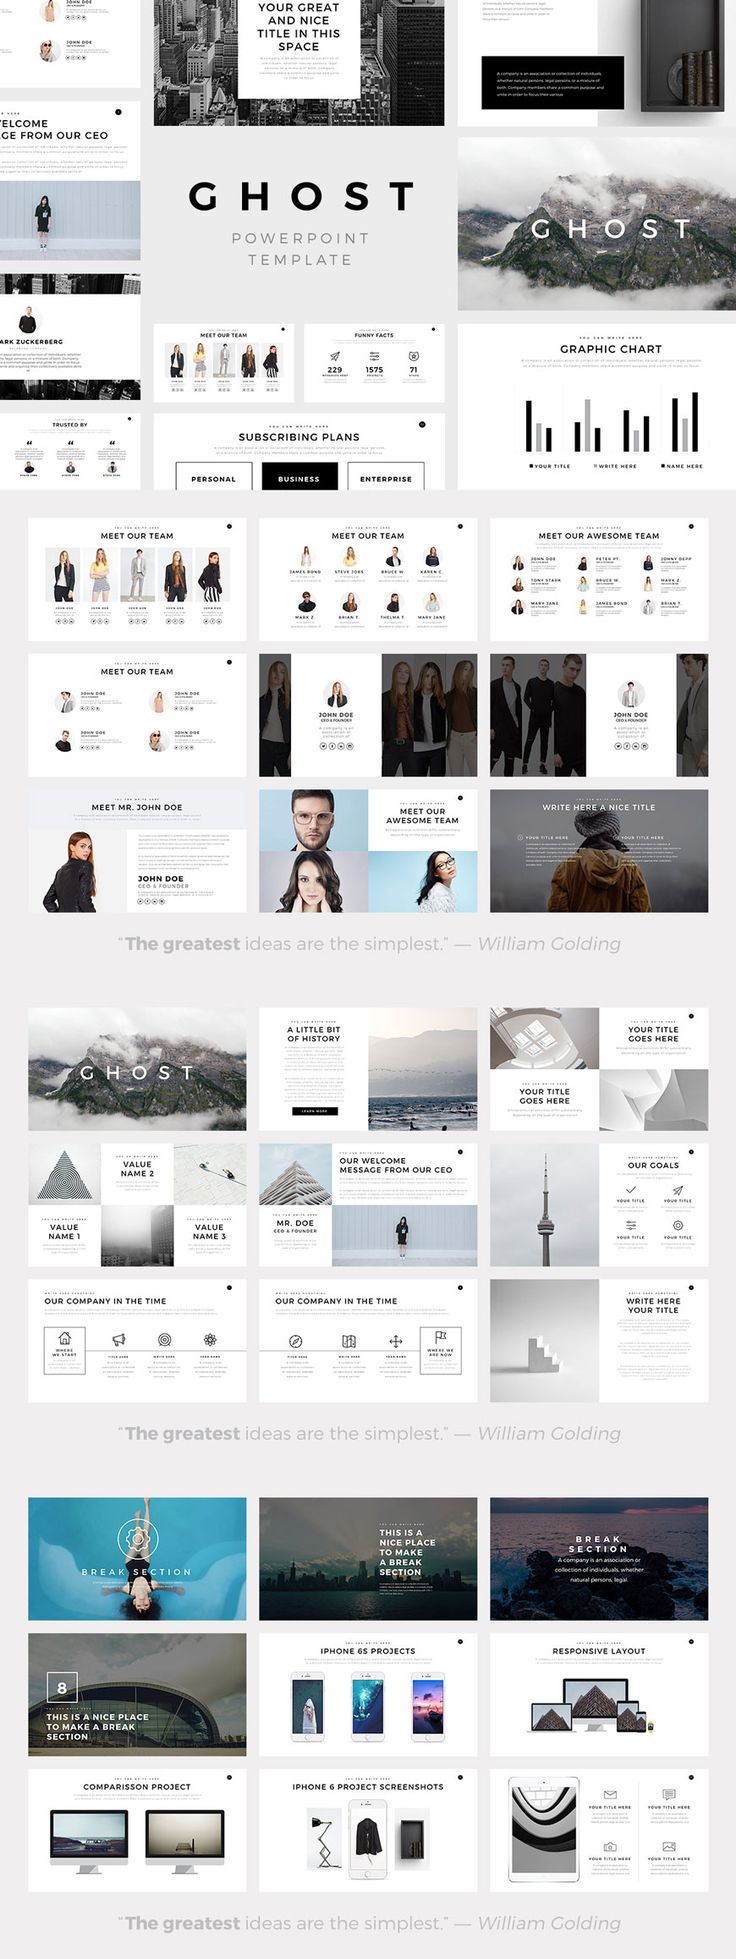 Best 25 cool powerpoint ideas on pinterest power point present your works professional and clean with ghost minimal powerpoint template with a clean toneelgroepblik Gallery